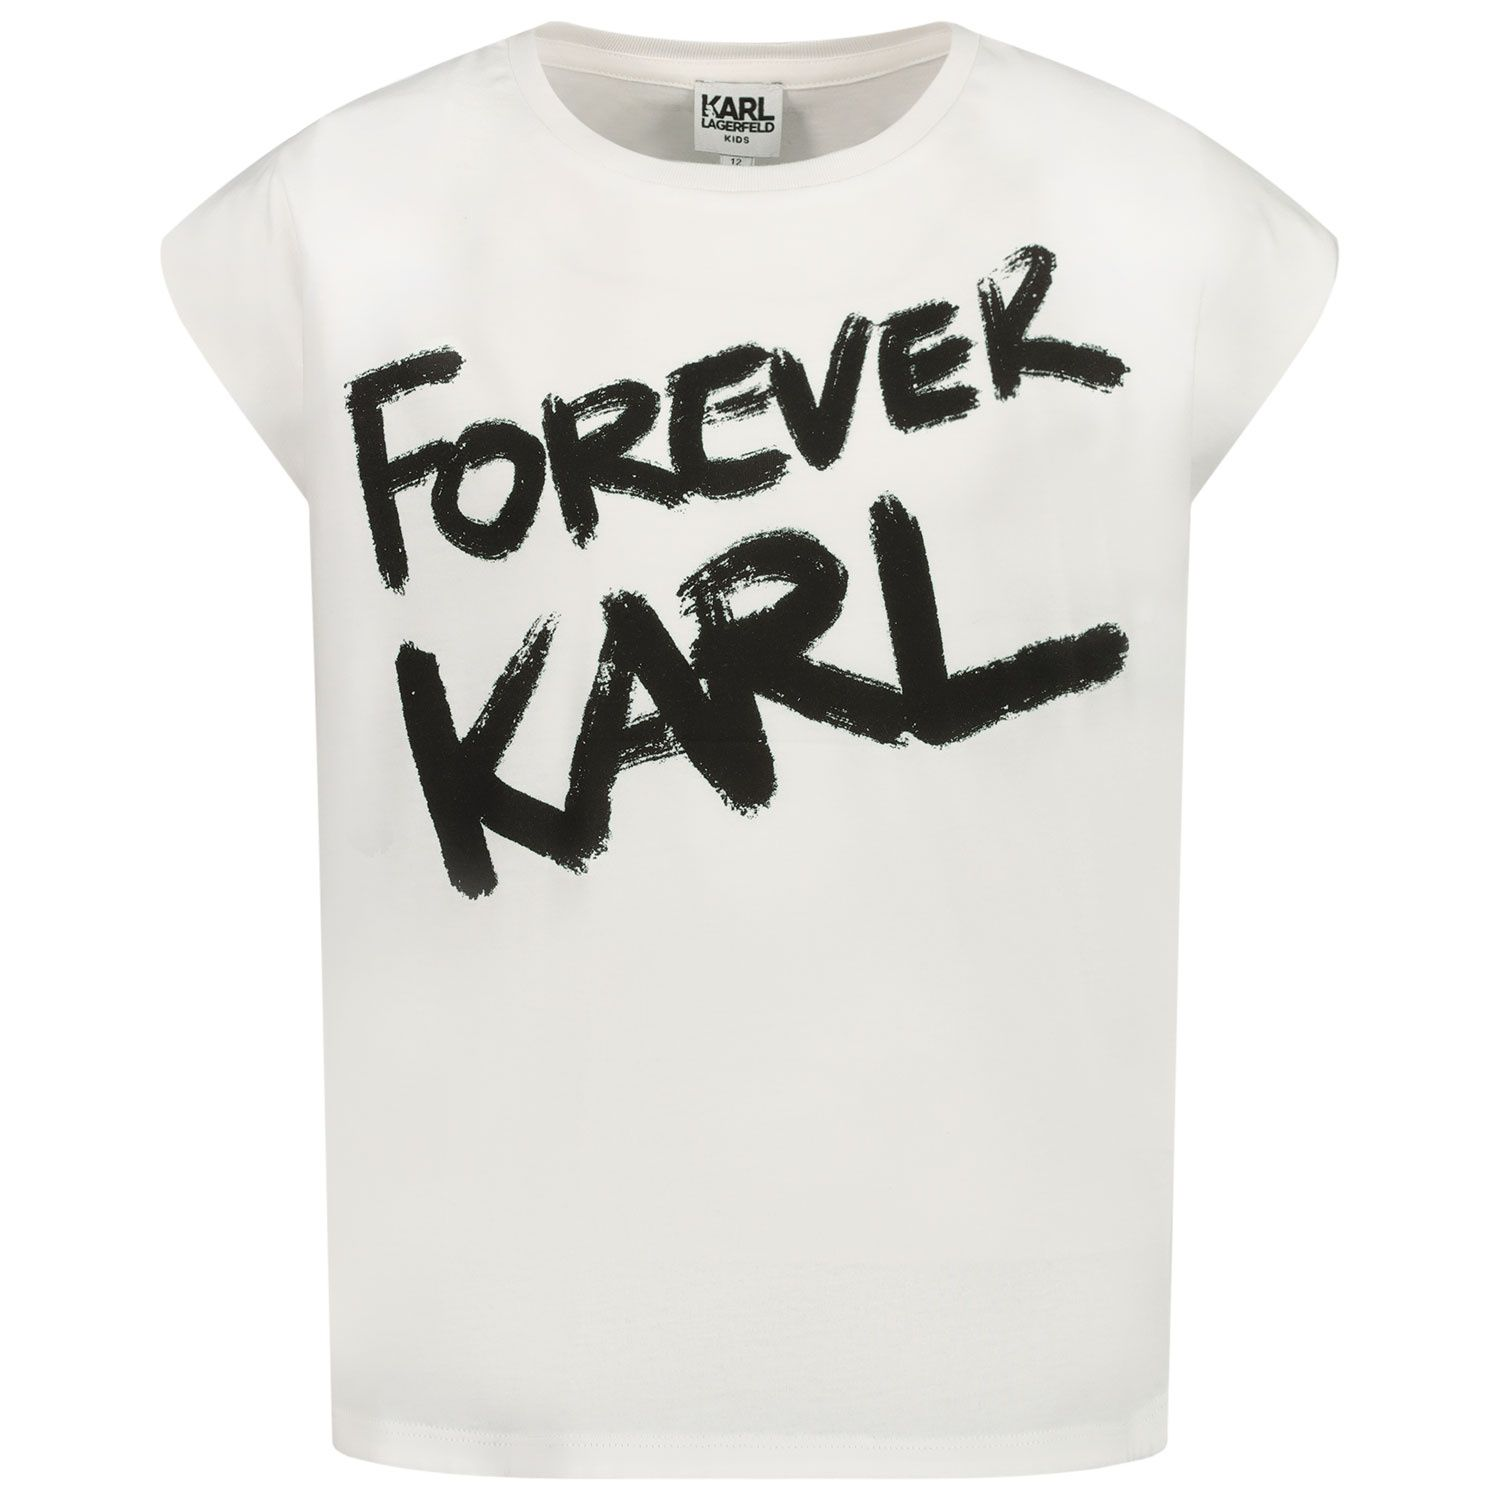 Picture of Karl Lagerfeld Z15267 kids t-shirt white